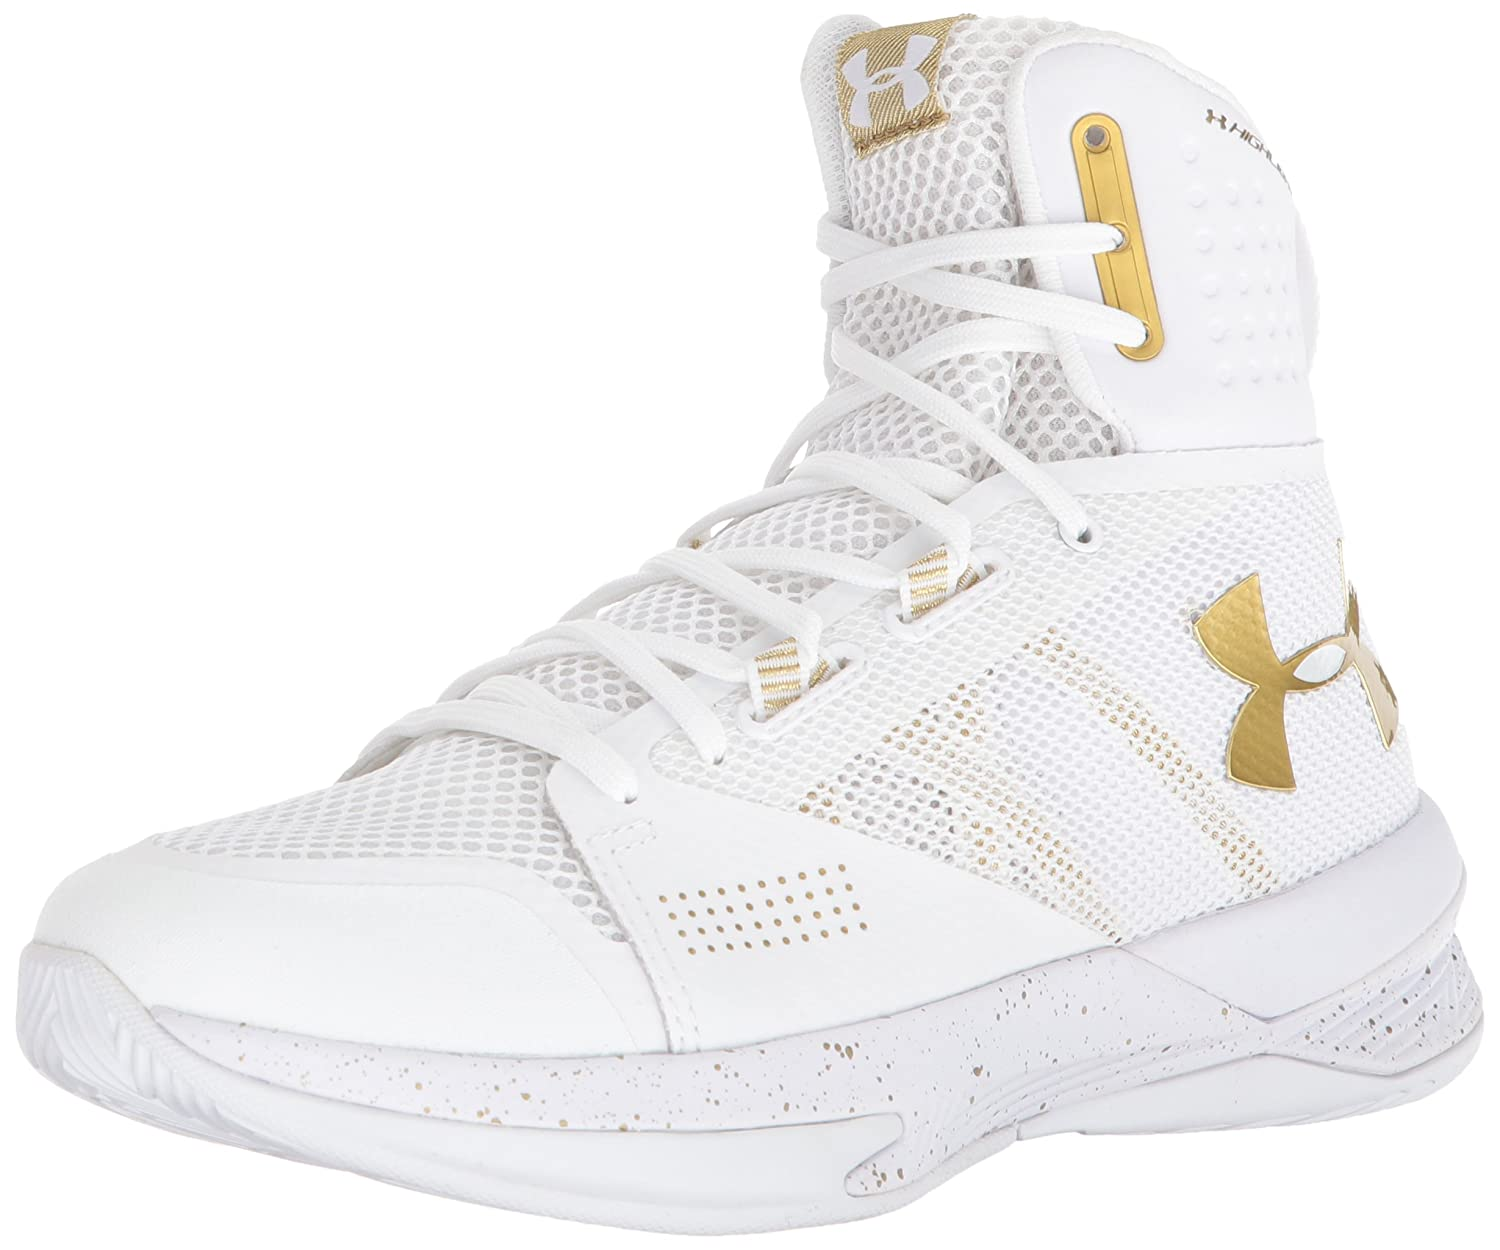 [アンダーアーマー] Women's Highlight Ace Volleyball Shoe [並行輸入品] B0723B36ZP White-metallic Gold 8 B(M) US 8 B(M) US|White-metallic Gold